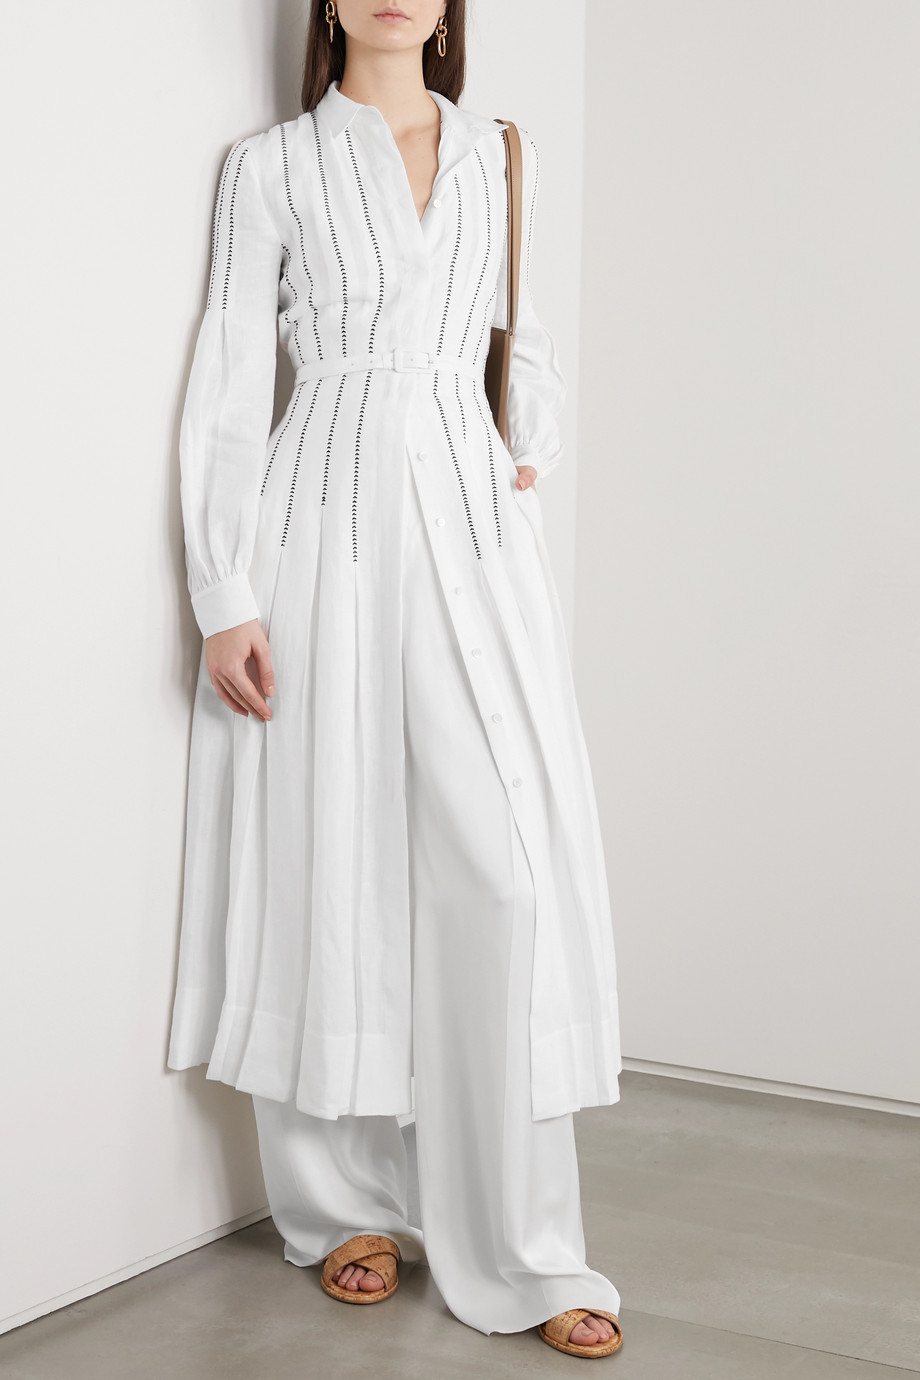 Gabriela Hearst + NET SUSTAIN Chelsea belted pleated embroidered organic linen midi dress